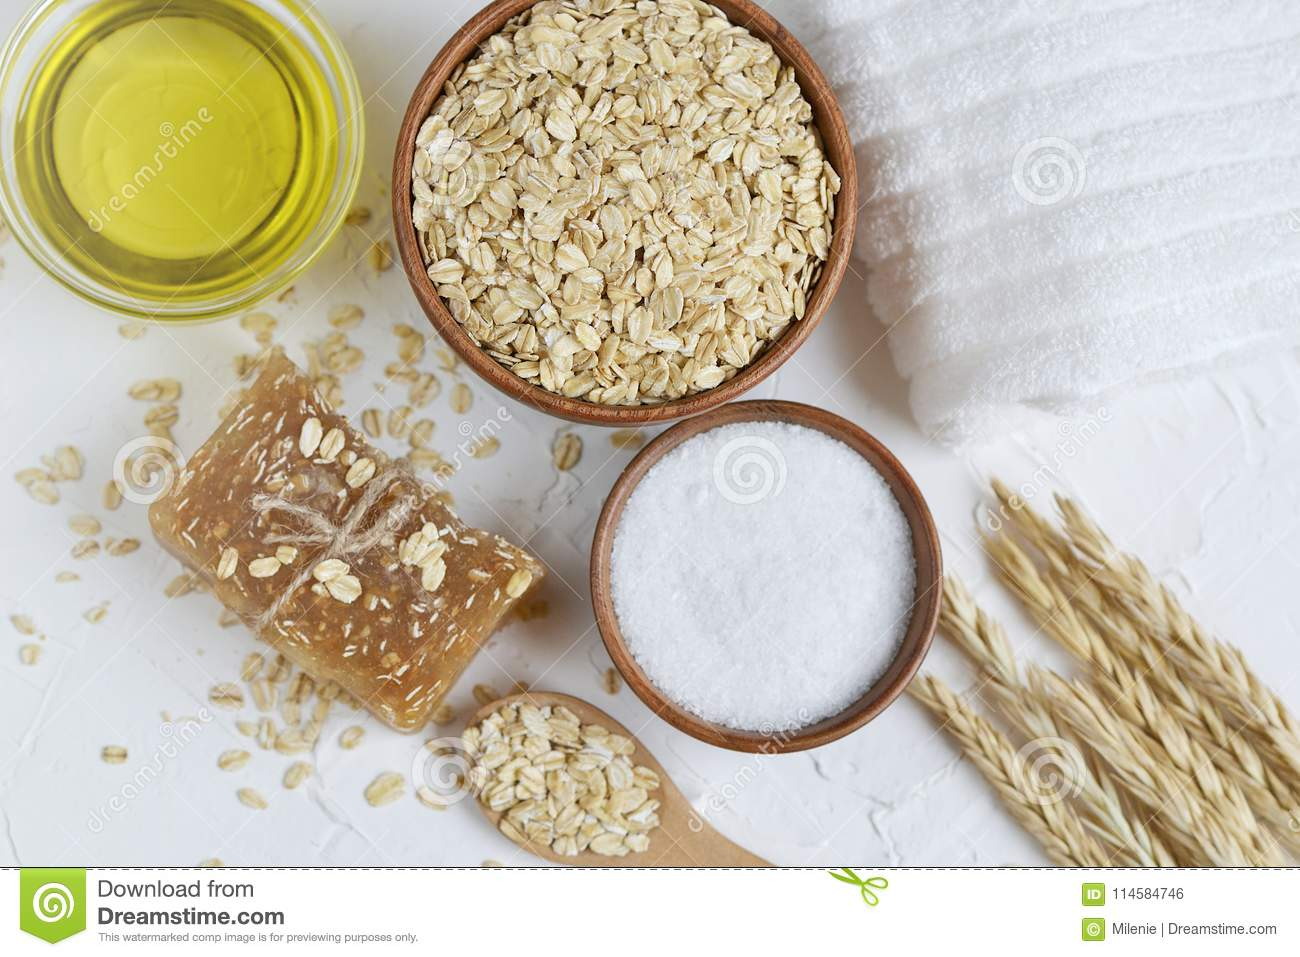 Natural Ingredients for Homemade Oatmeal Body Face Scrub